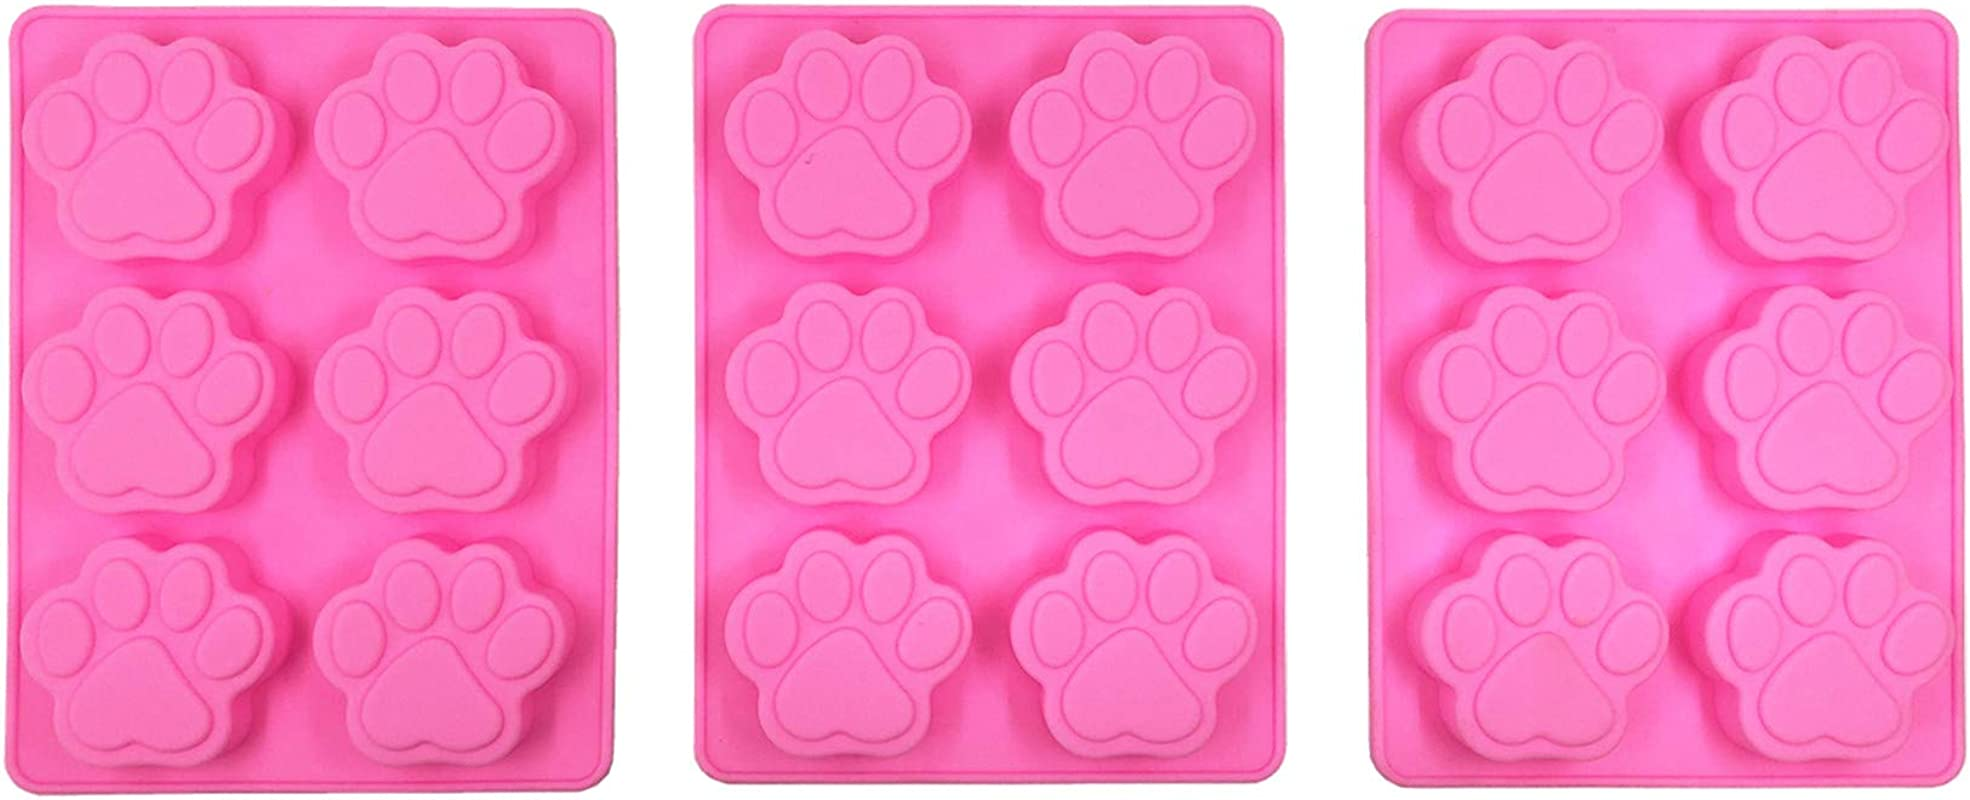 Cat S Paw Shape Molds Food Grade Silicone Cake Molds Chocolate Ice Jelly Mold Party Decor Homemade Cupcake Candy Bake Ware Baking Tools And Soap Molds 3 Pack Cat S Paw